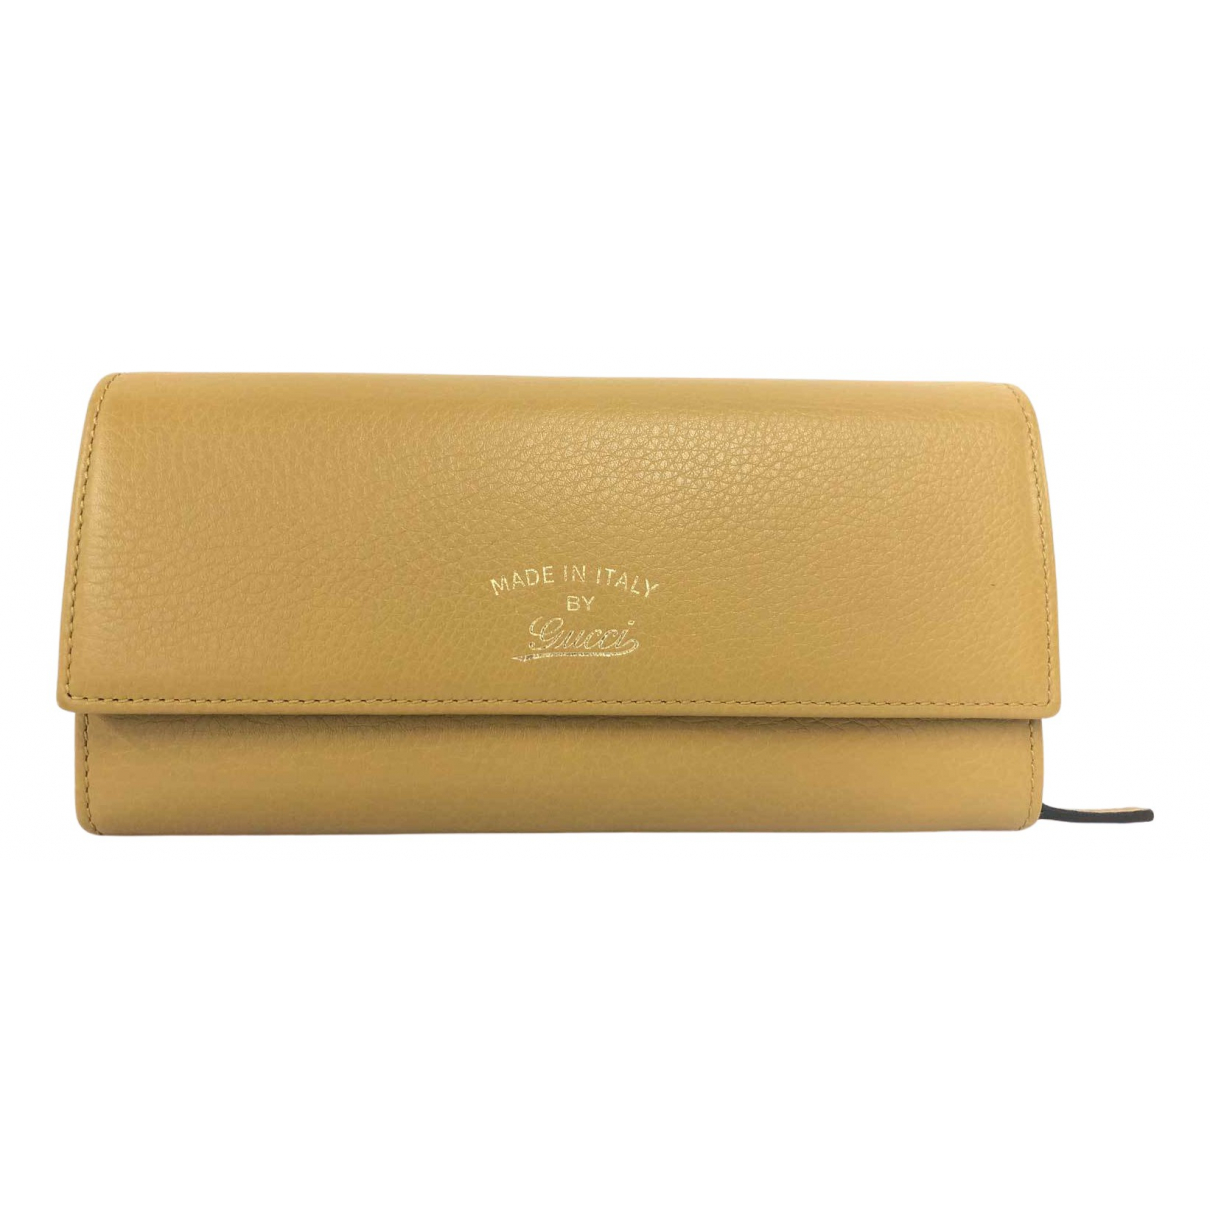 Gucci \N Yellow Leather wallet for Women \N